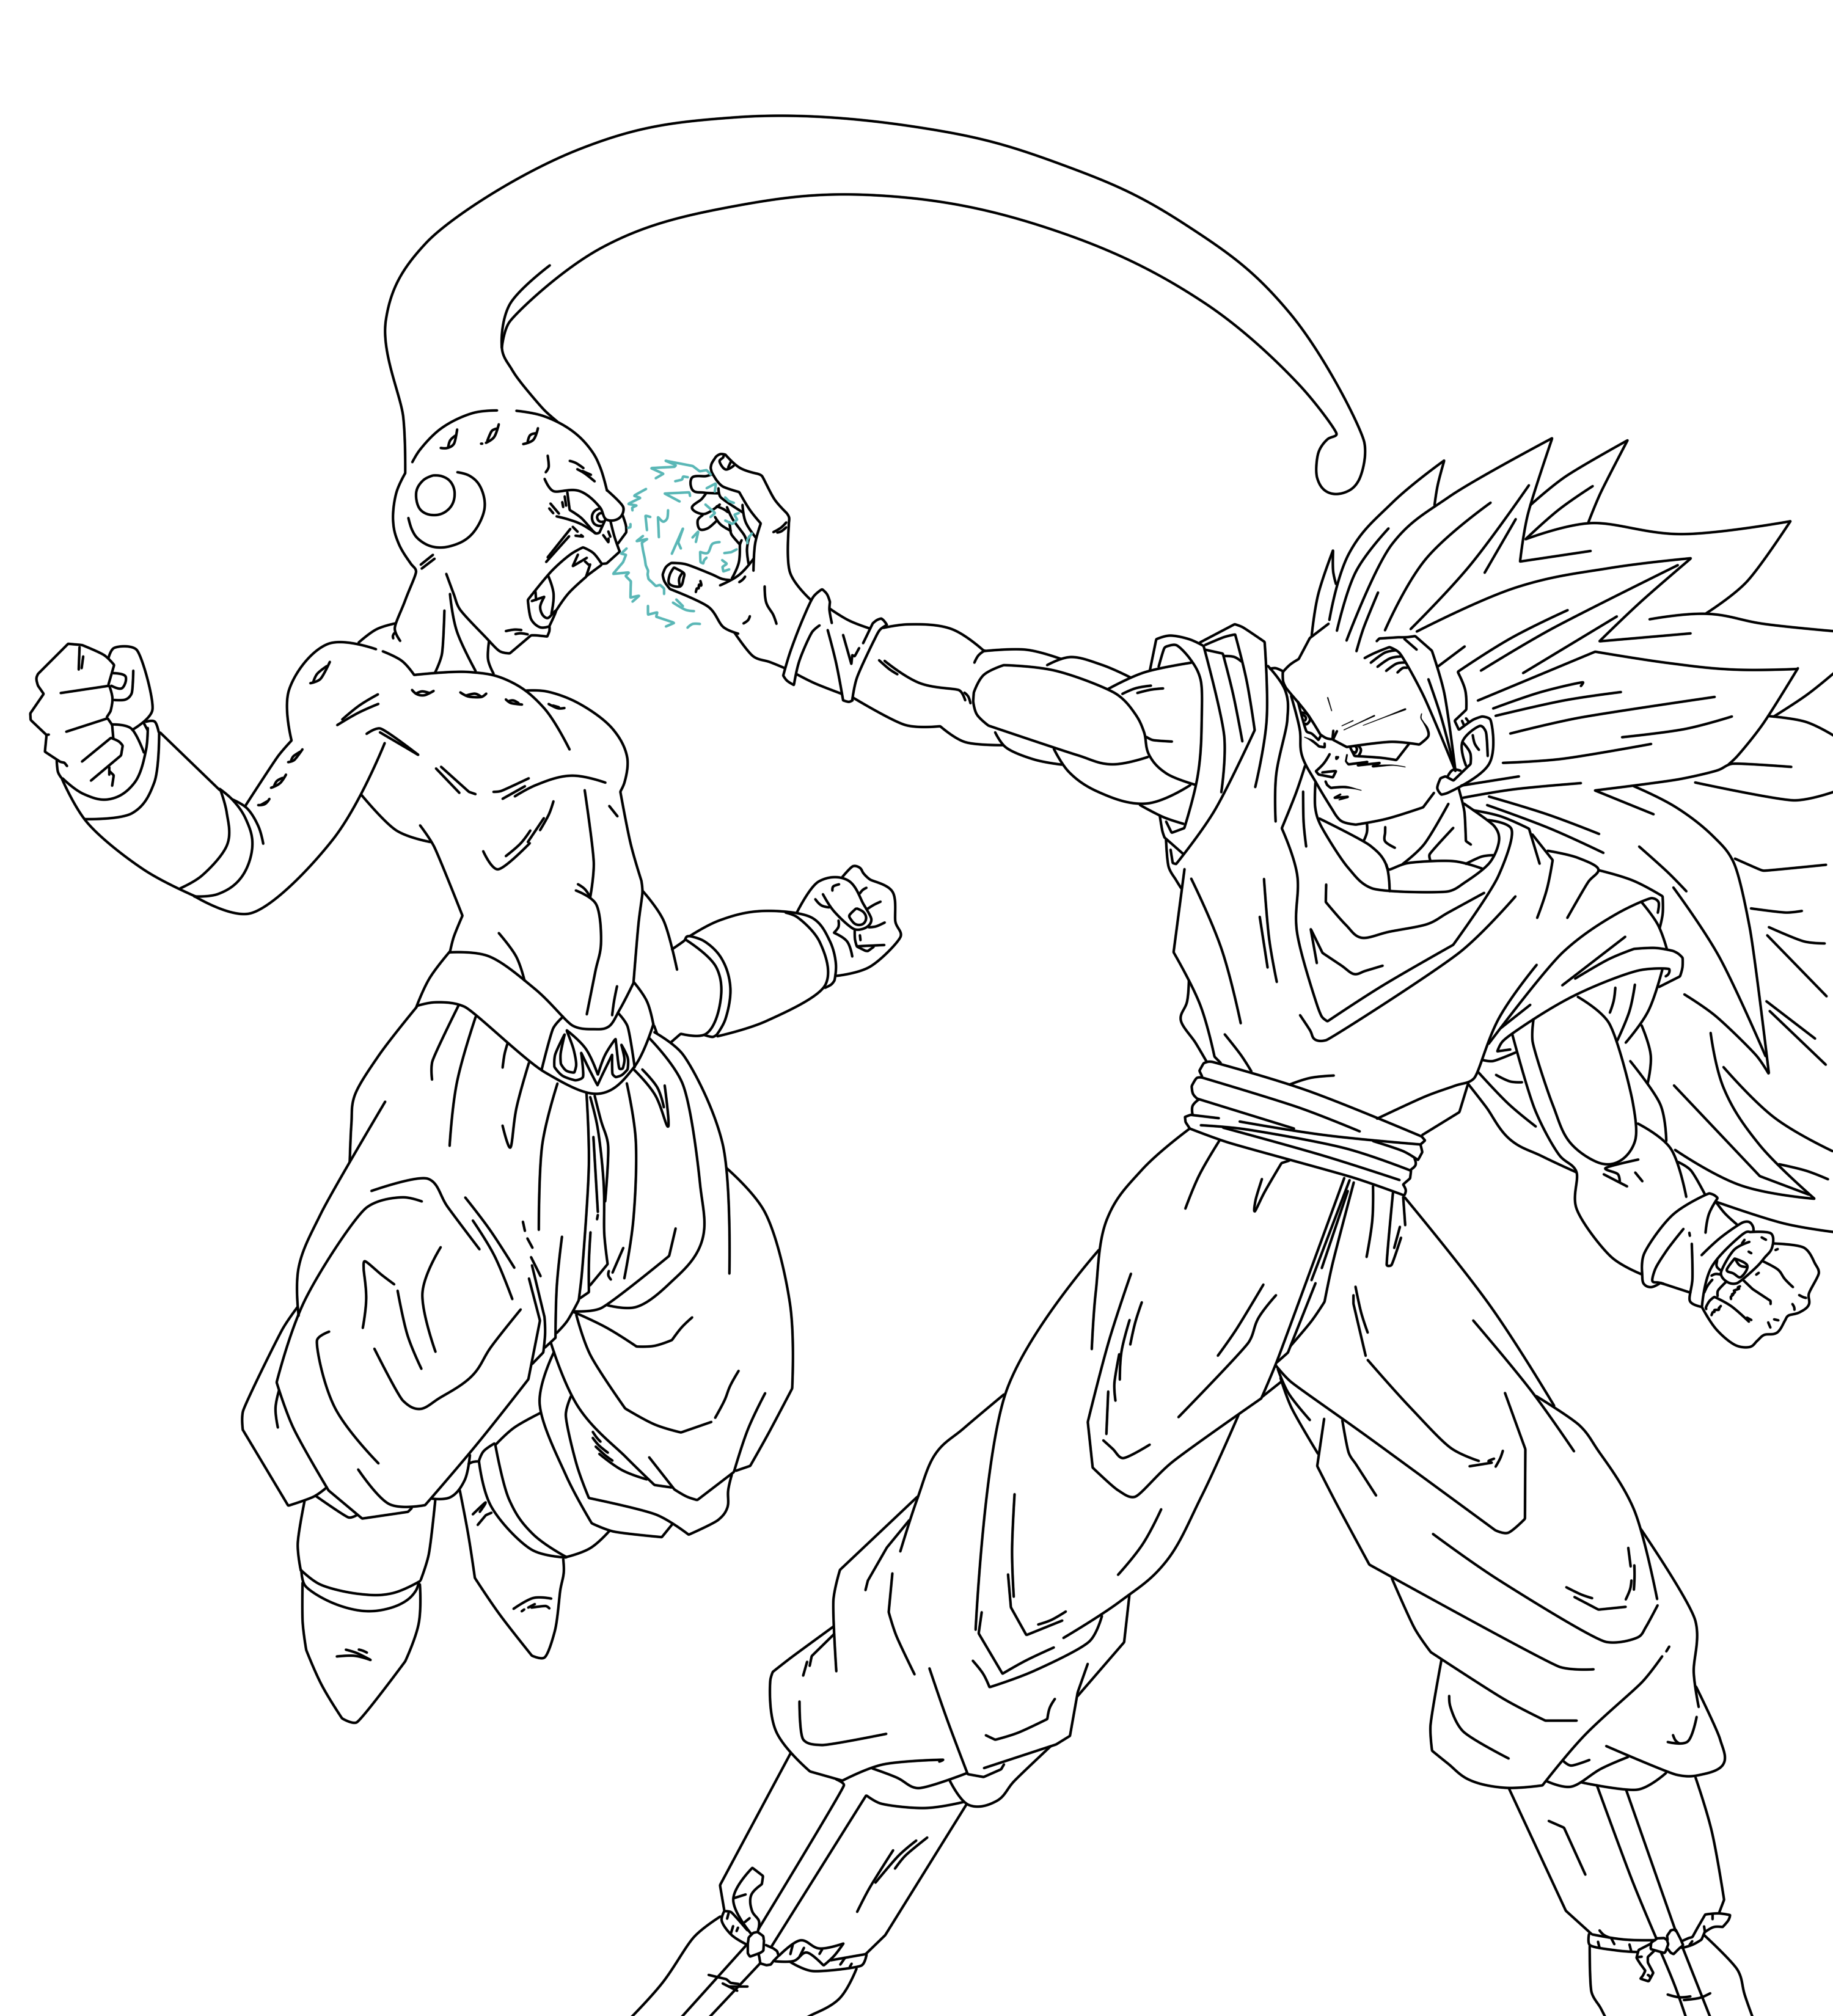 Line Drawing Vs Value Drawing : Goku vs majin bu line art by suekumaru on deviantart